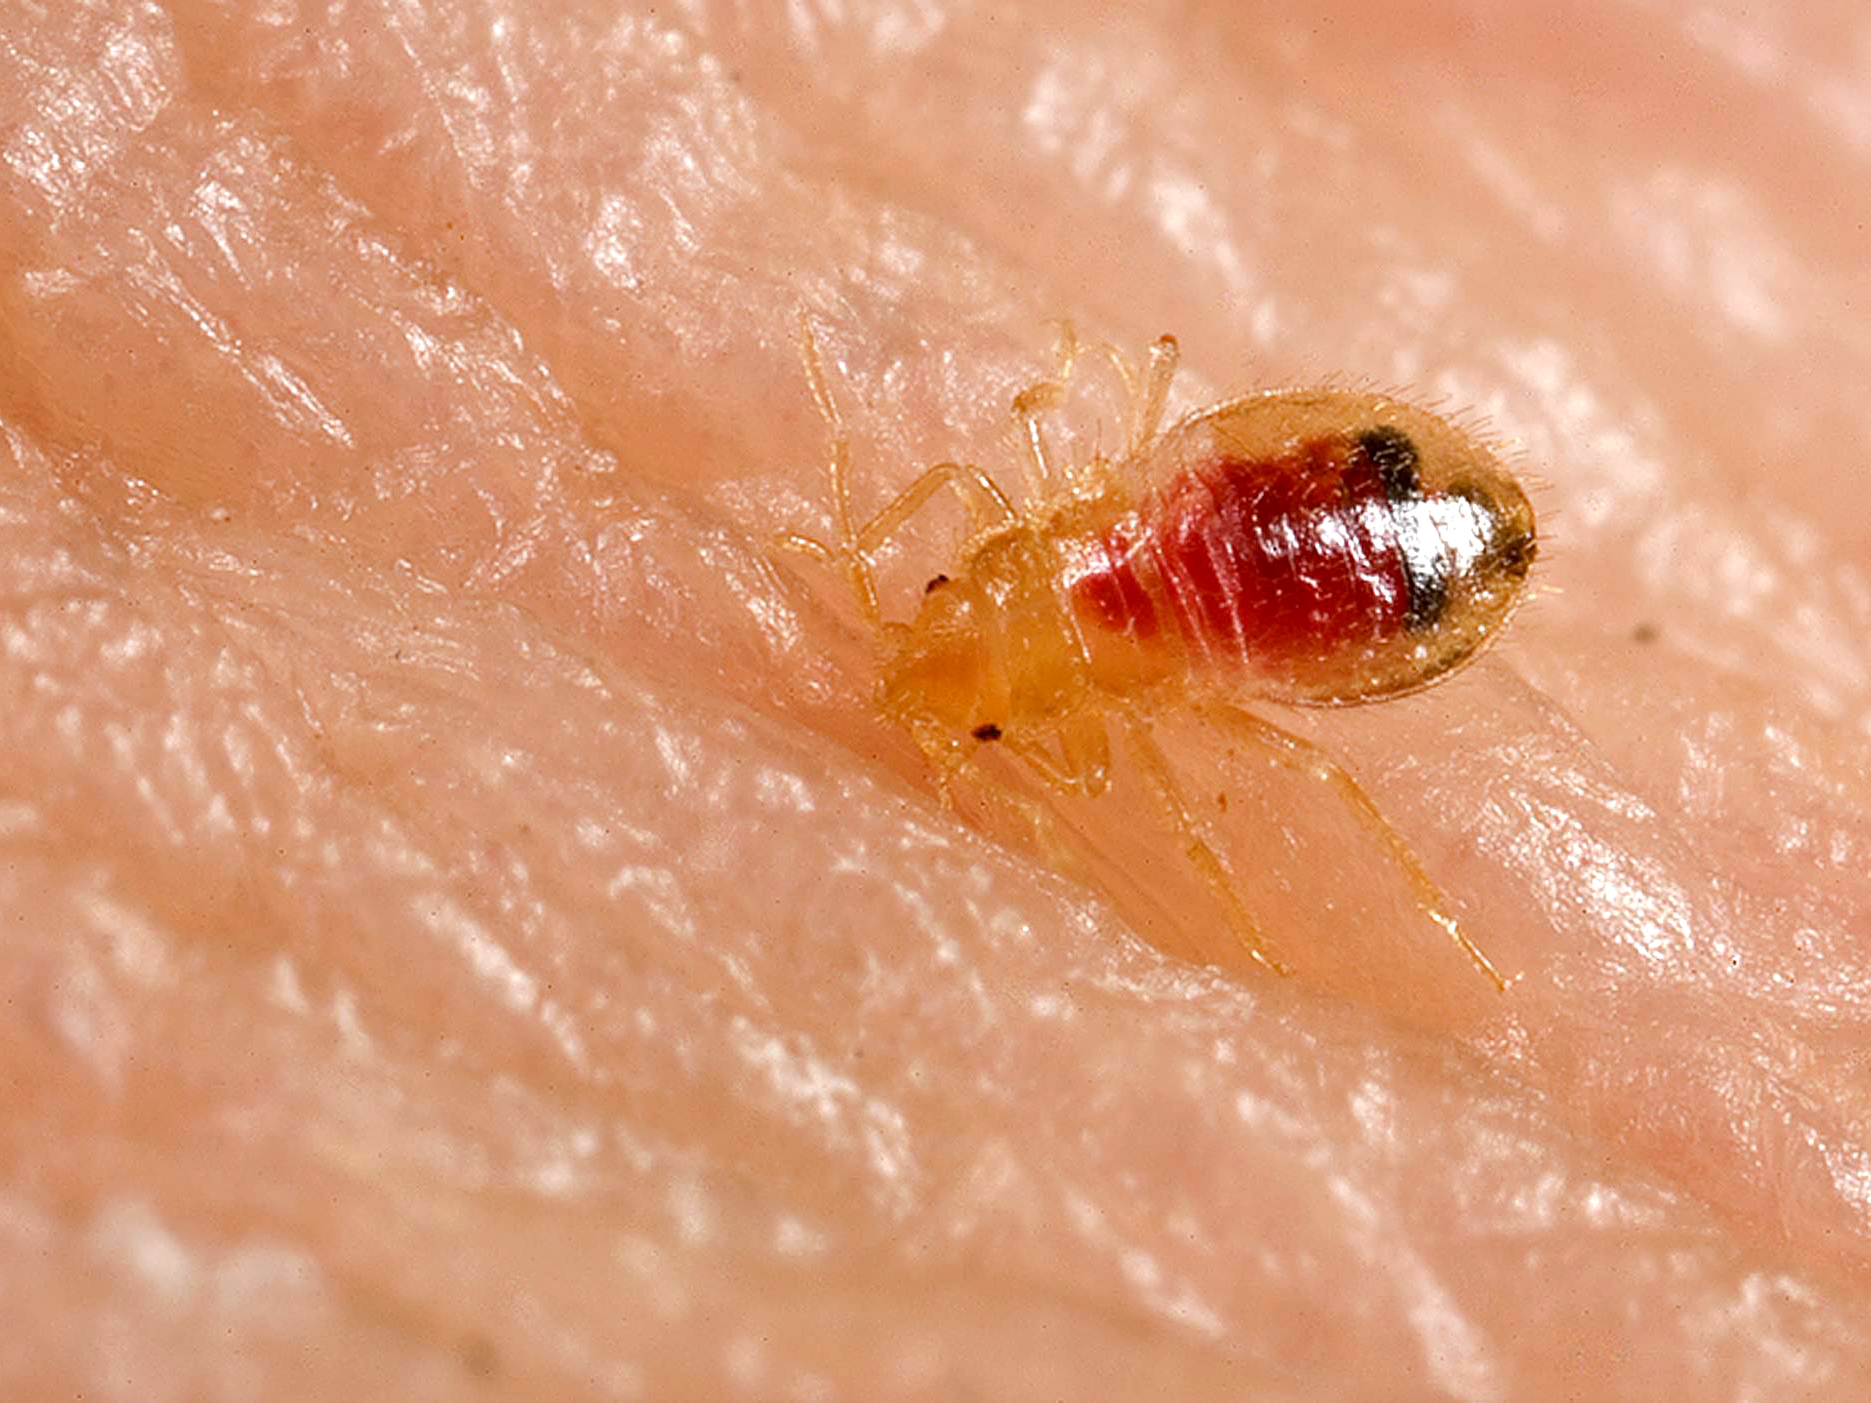 Bed bug nymph, Cimex lectularius The Business of Bedbugs